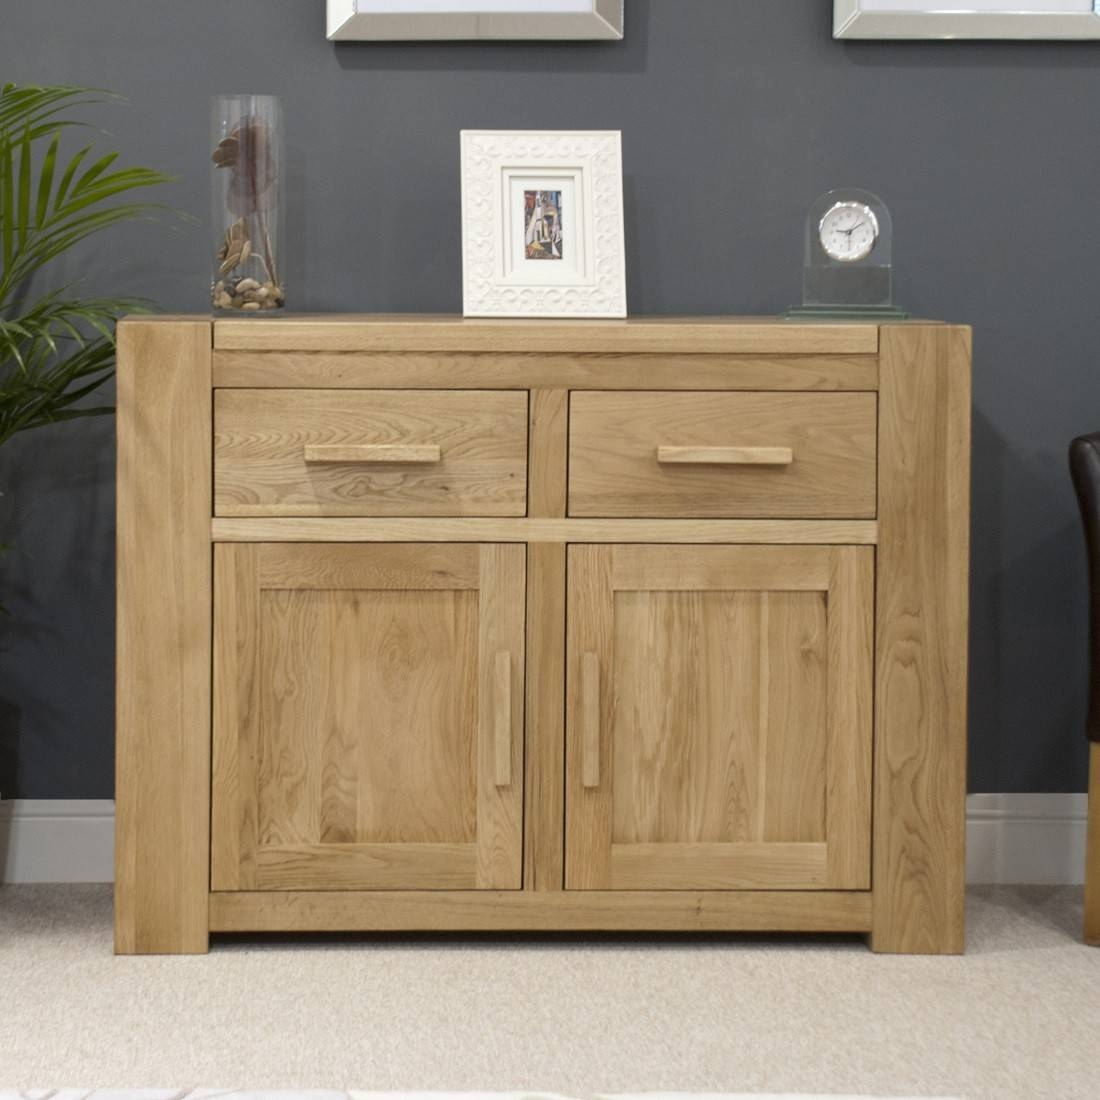 Oak Sideboards | Oak Furniture Uk intended for Small Wooden Sideboards (Image 16 of 30)